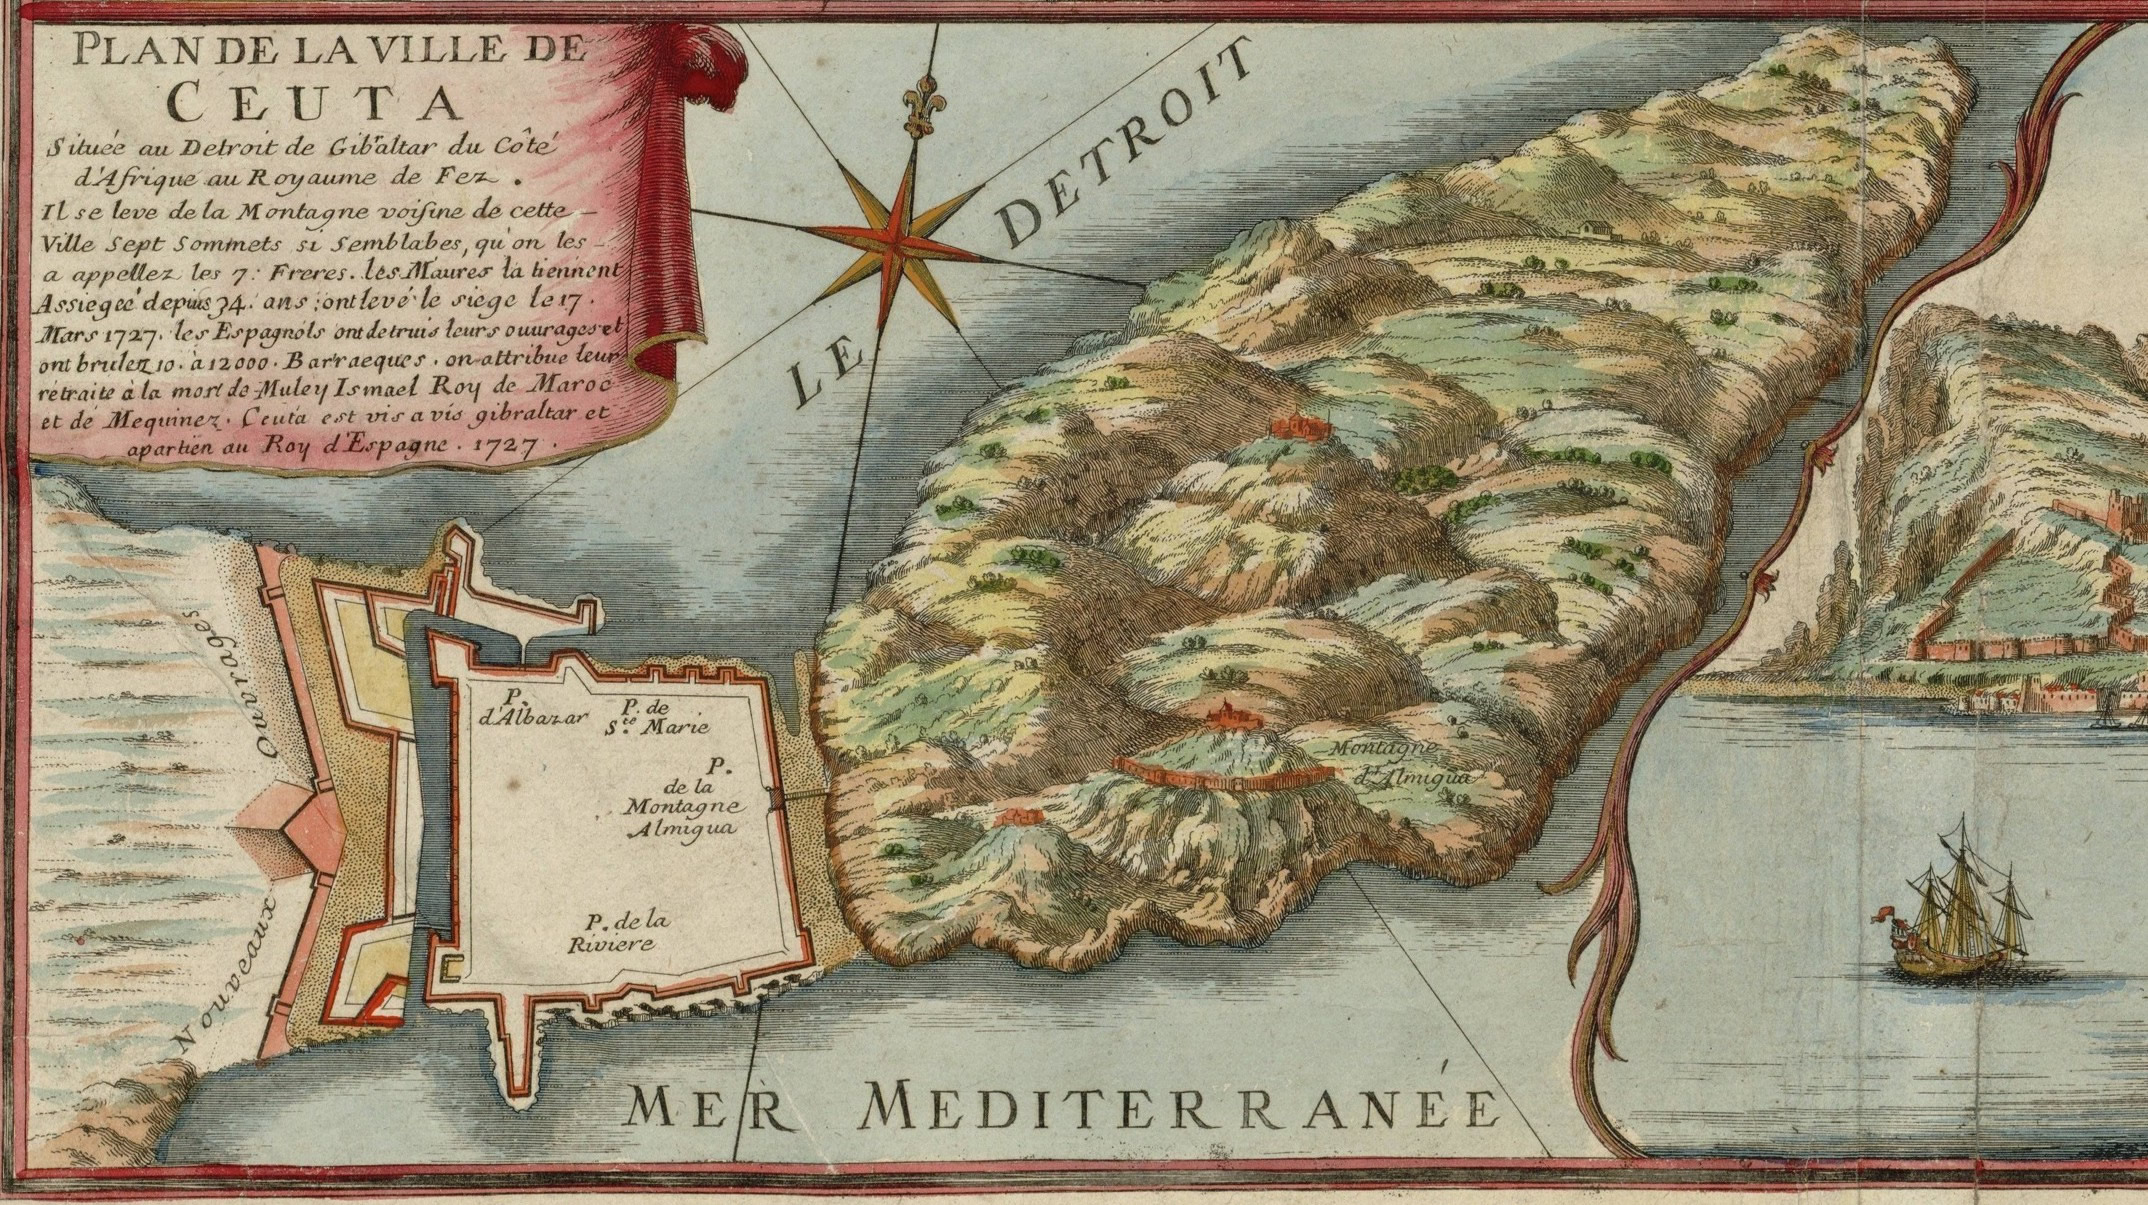 Map of the city of Ceuta 1727